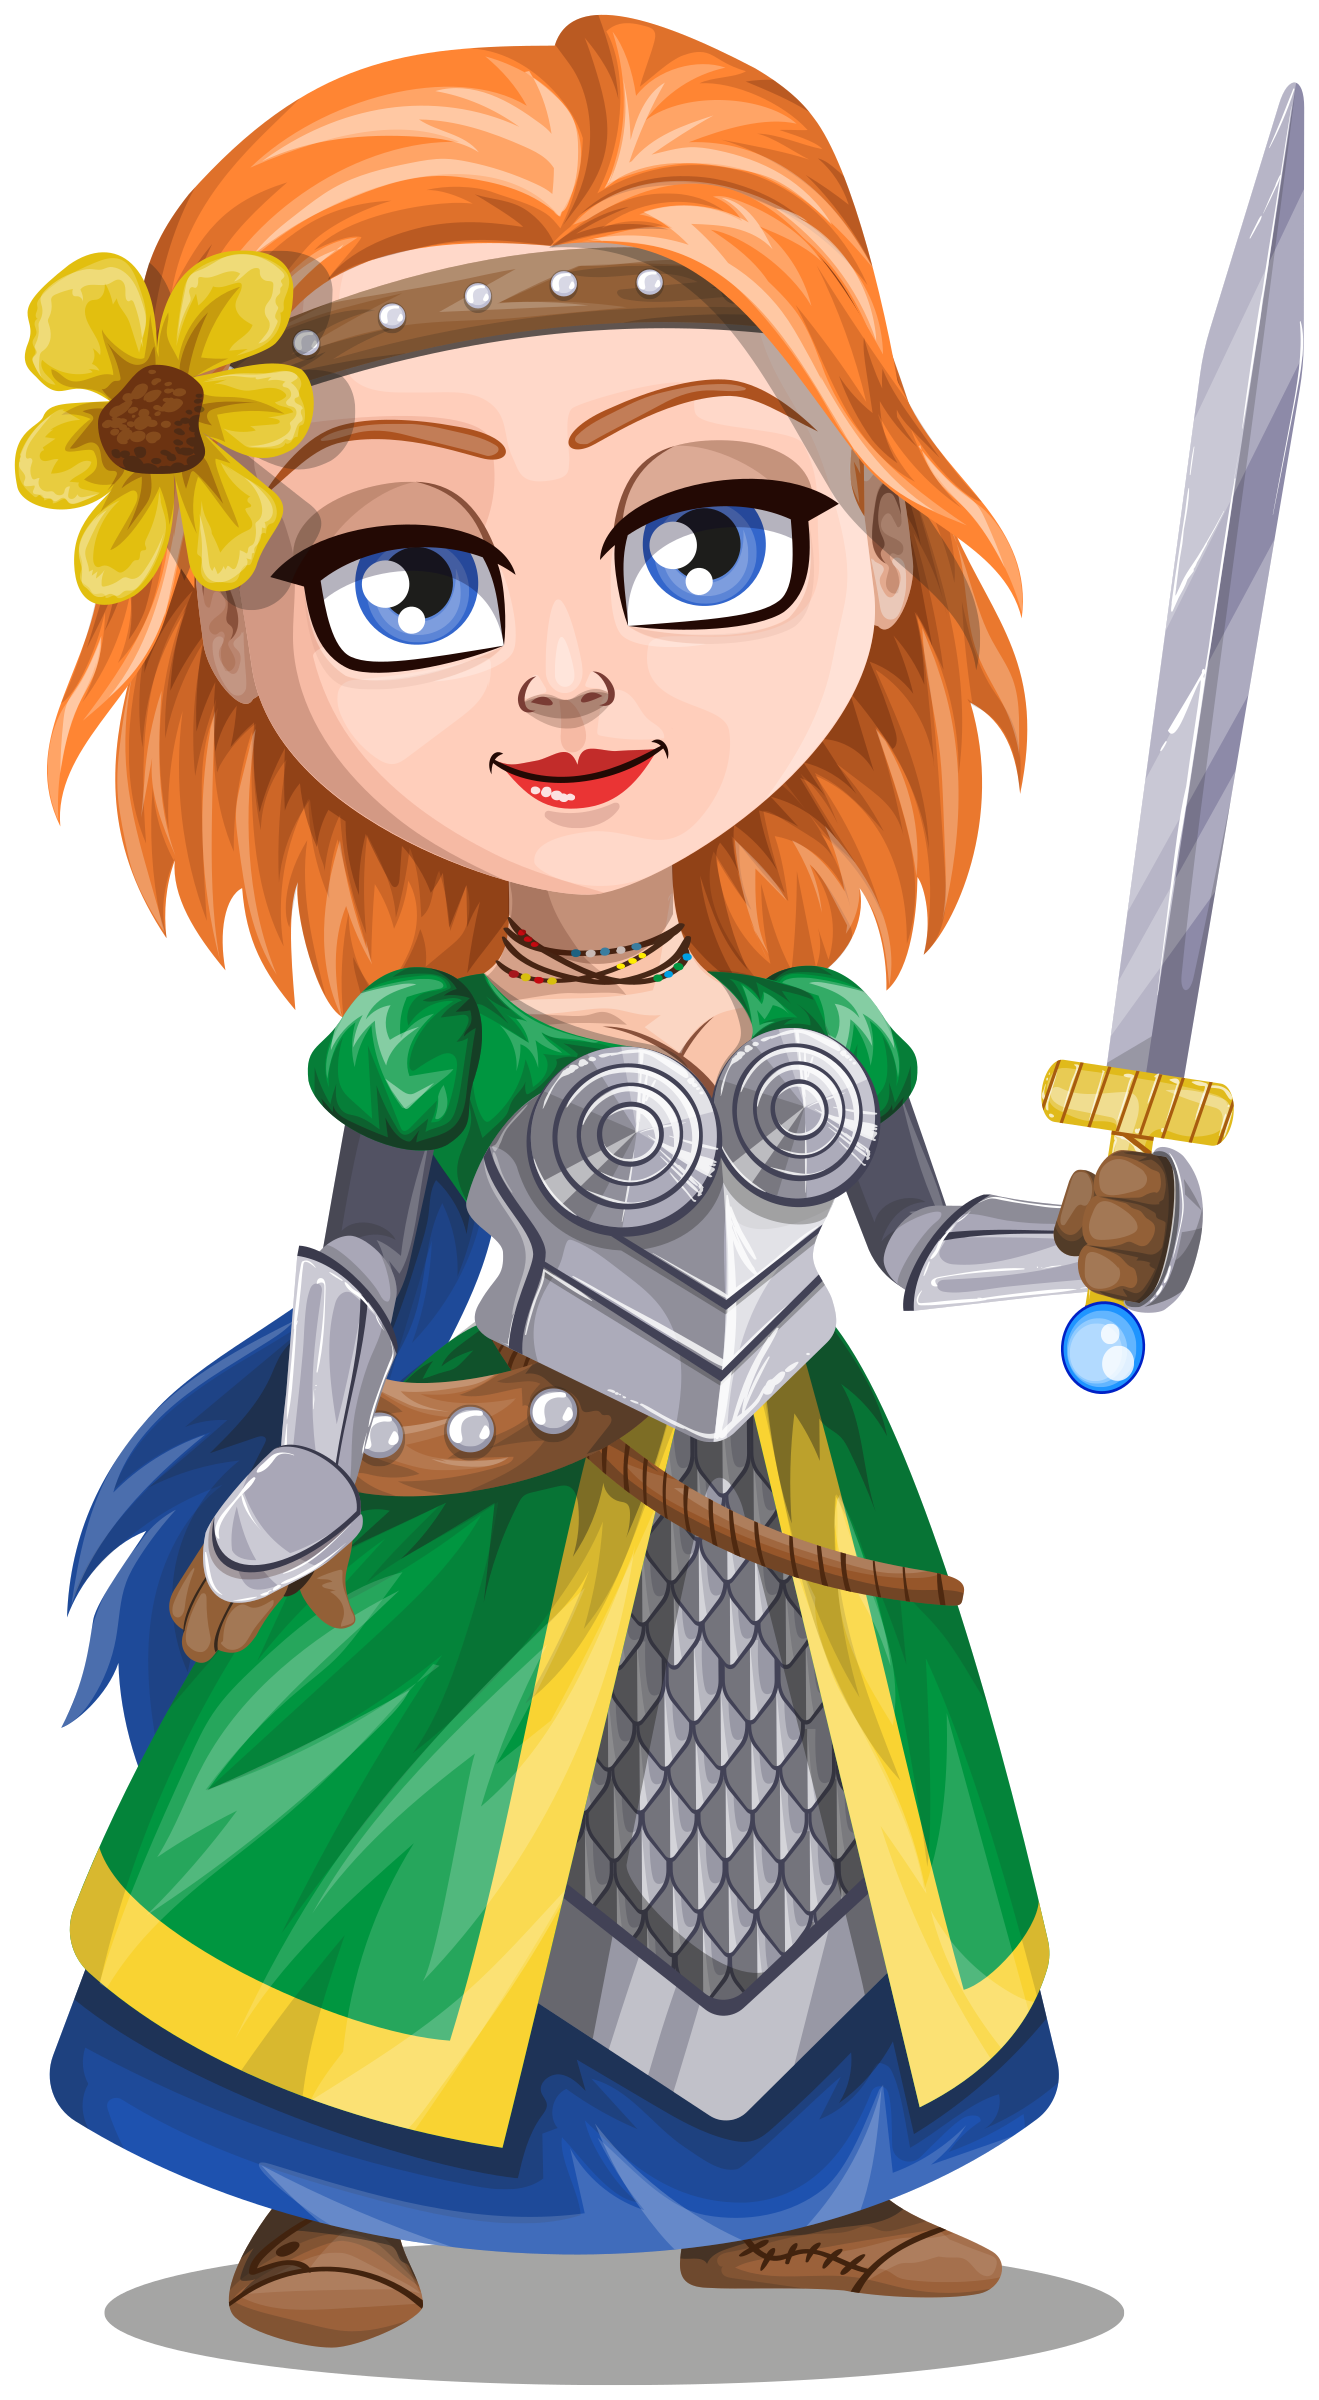 Knight warrior in armor. Knights clipart woman